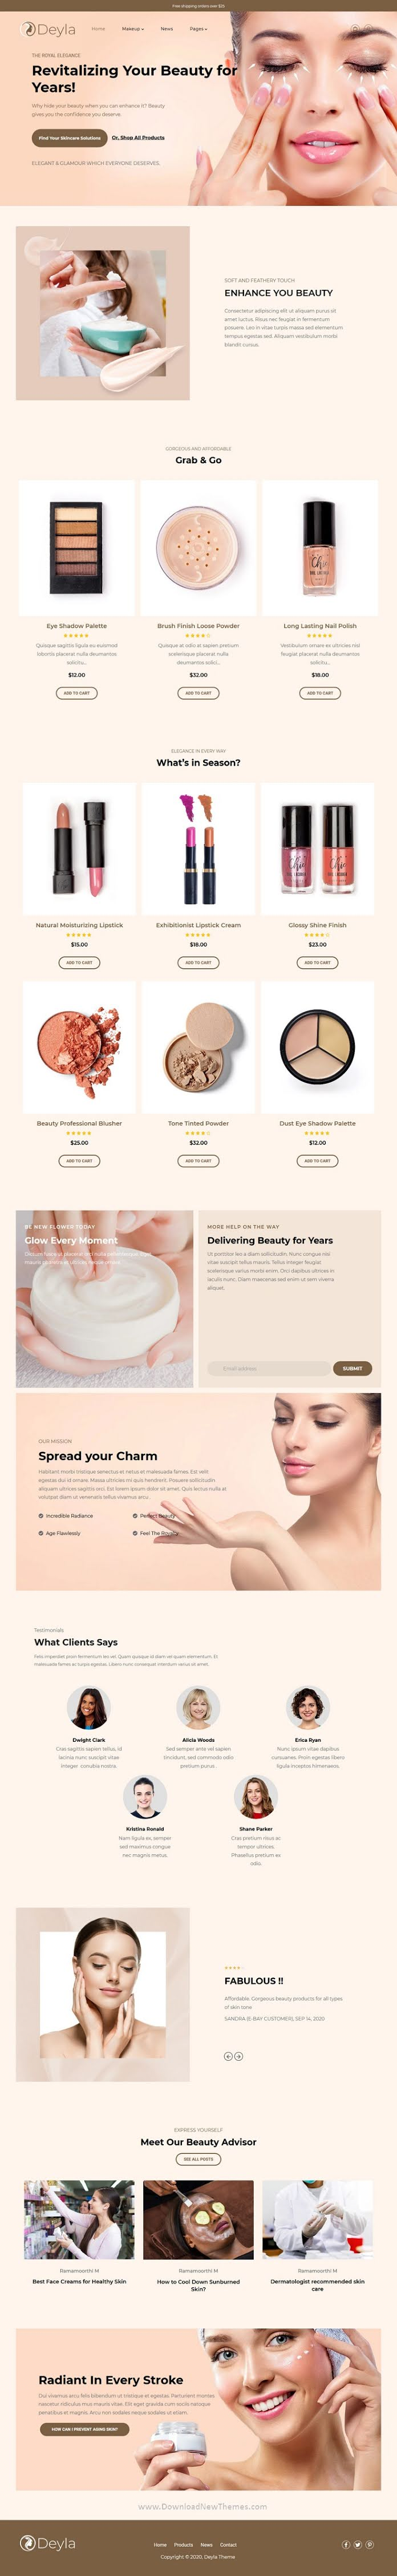 Best Makeup and Beauty Product Shopify Theme